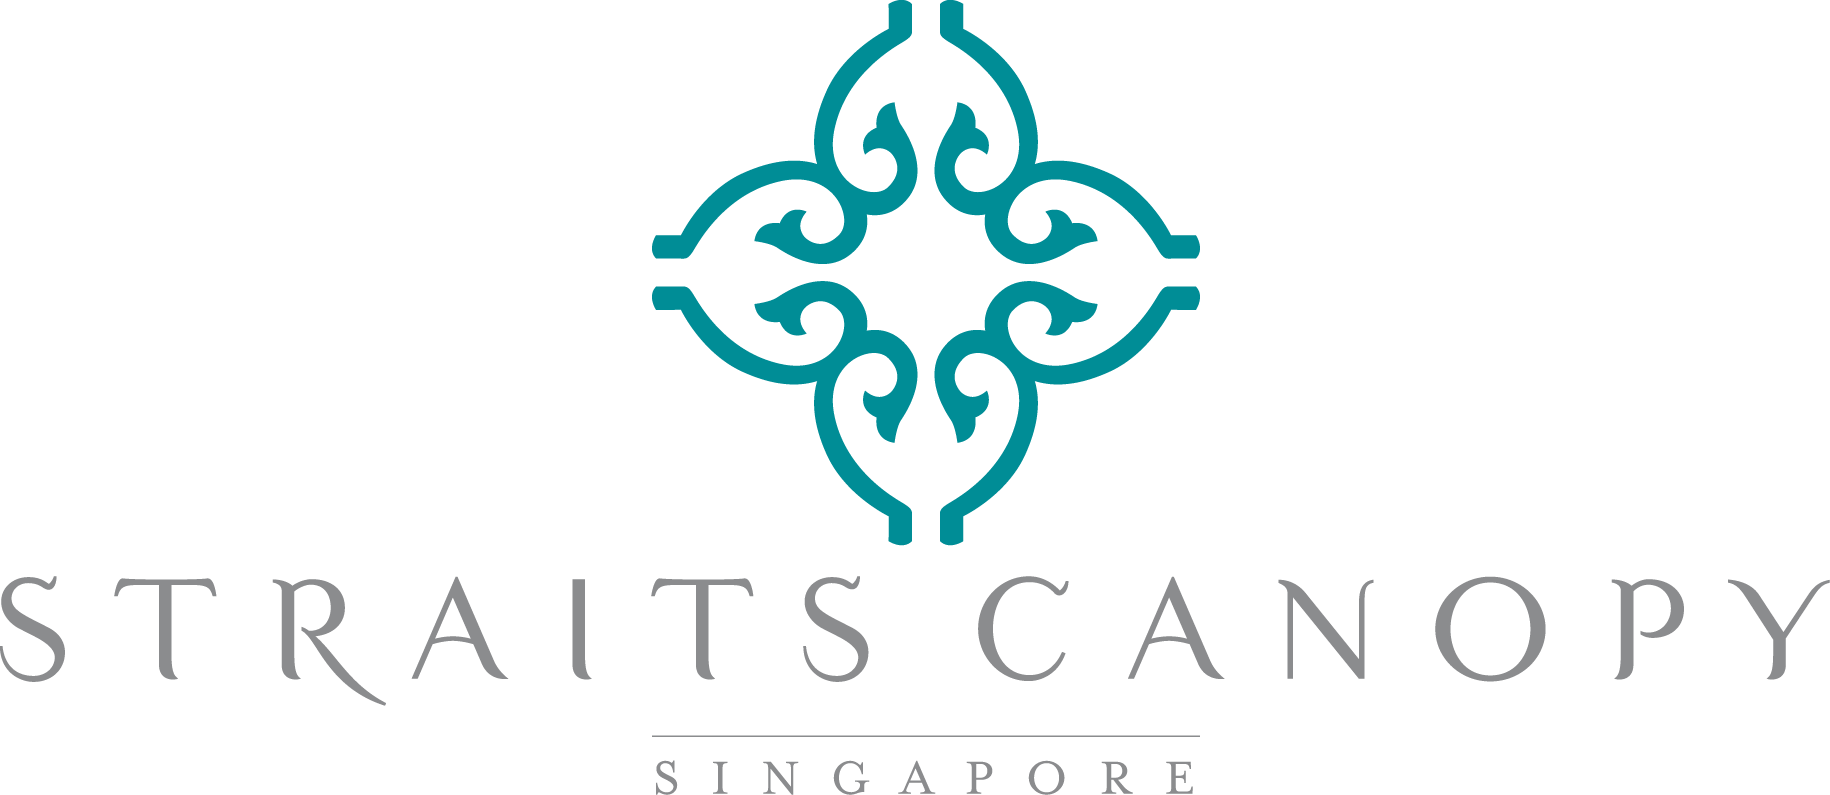 Singapore Gifts - Straits Canopy celebrates the beauty of blending to make Lifestyle Goods. Straits Canopy is a modern celebration of history offering lifestyle